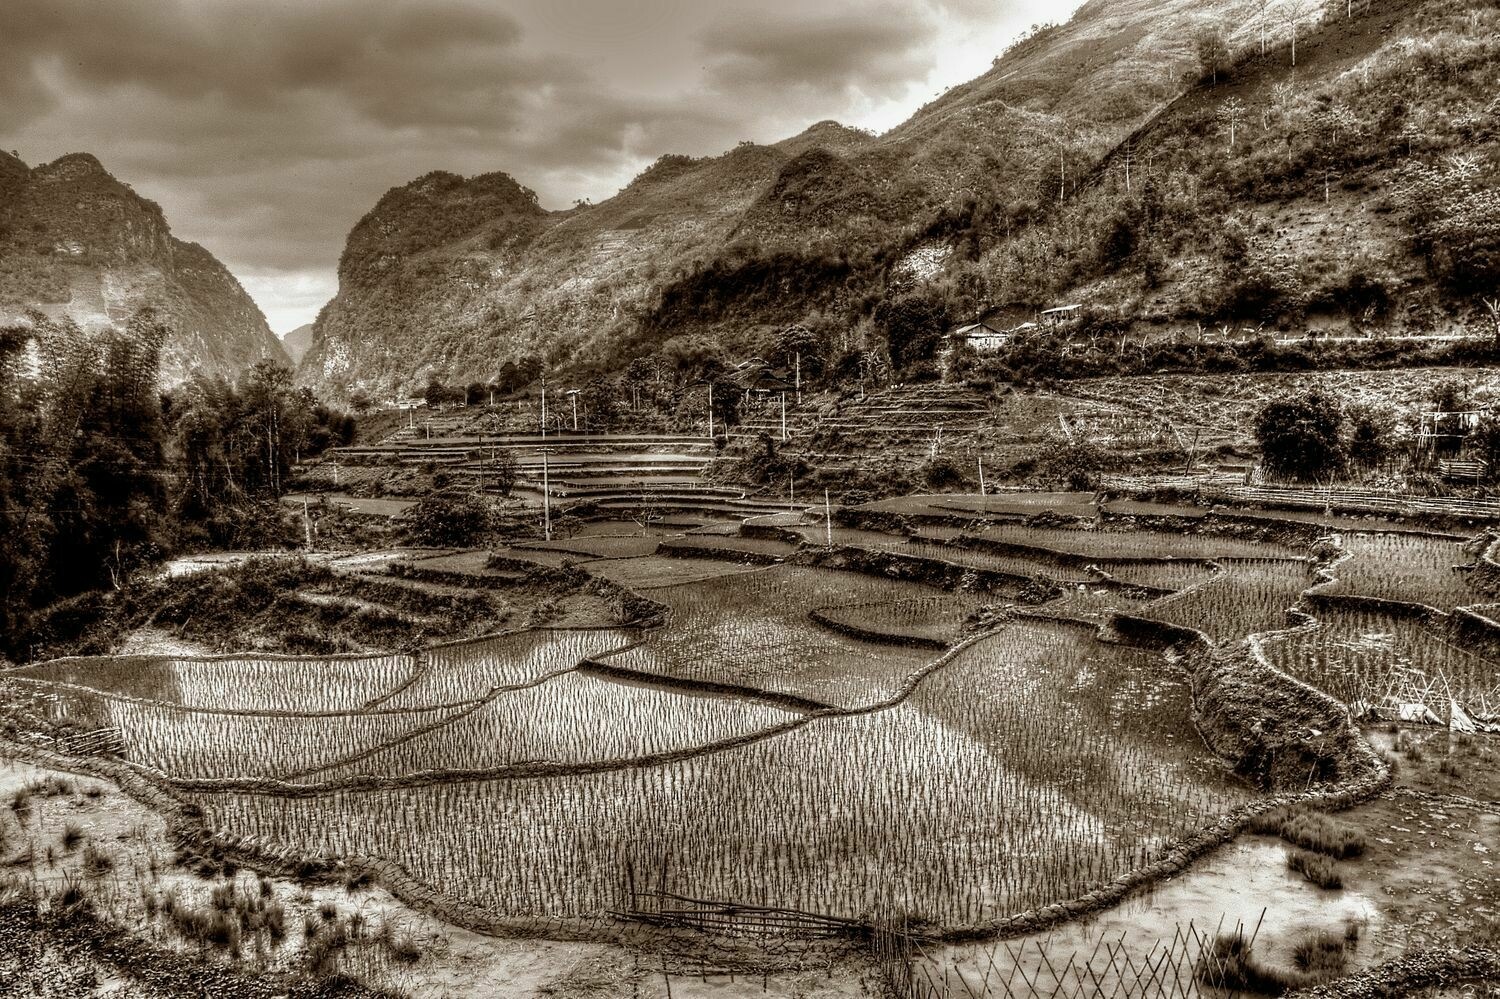 NORTHERN HIGHLANDS (VIETNAM) 01